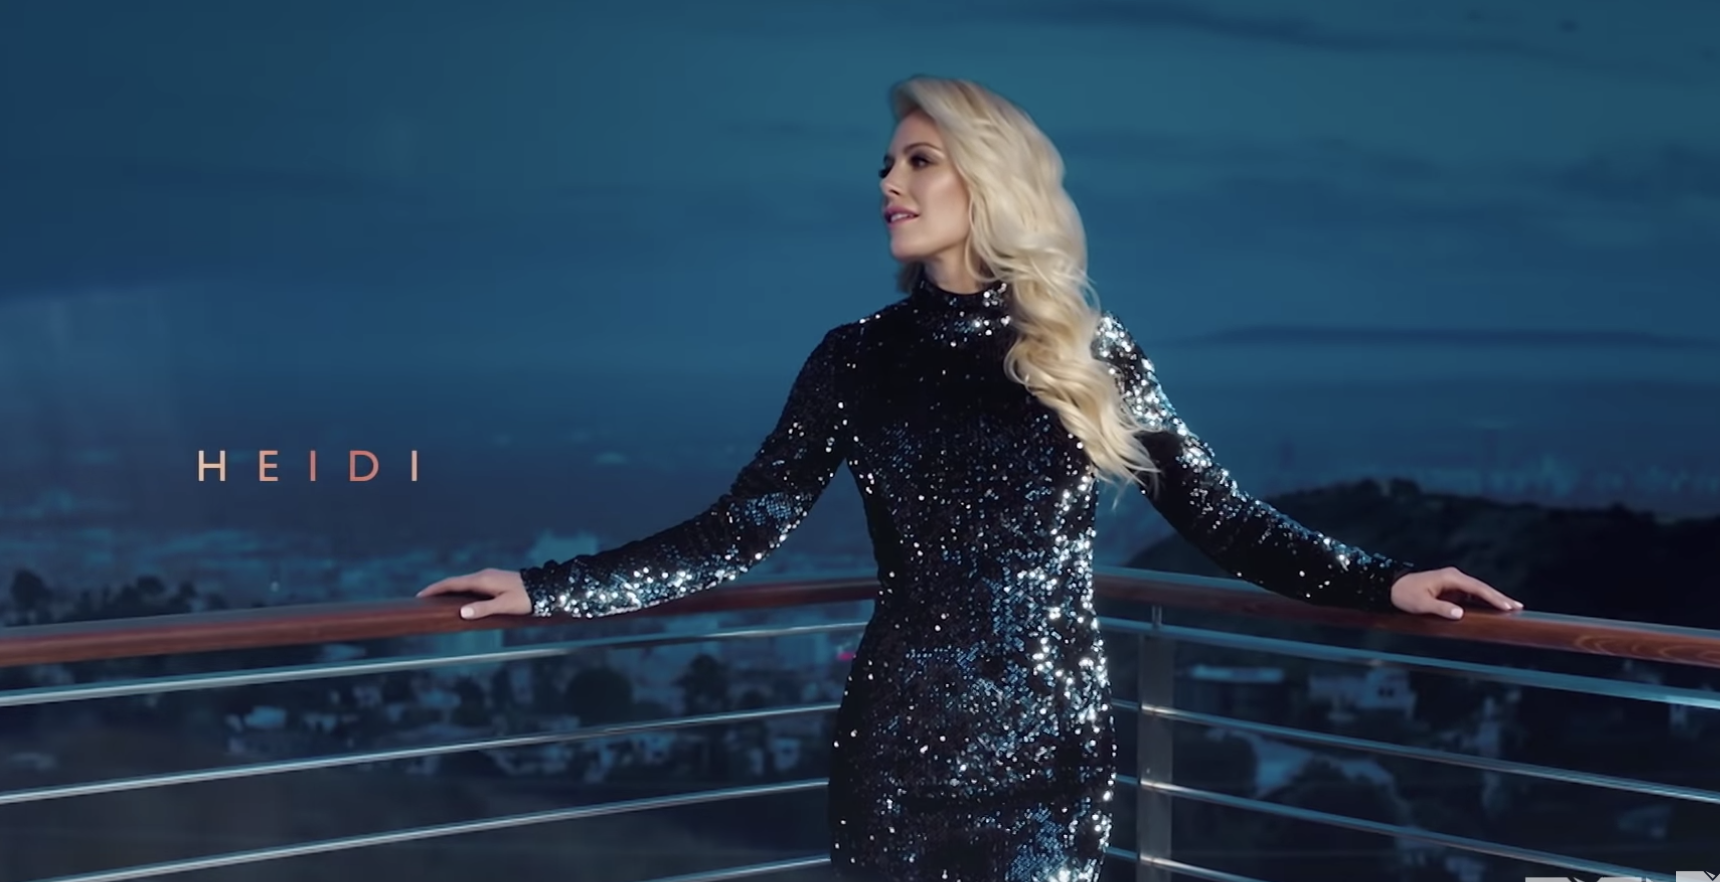 What's Up With 'The Hills: New Beginnings' Theme Song?